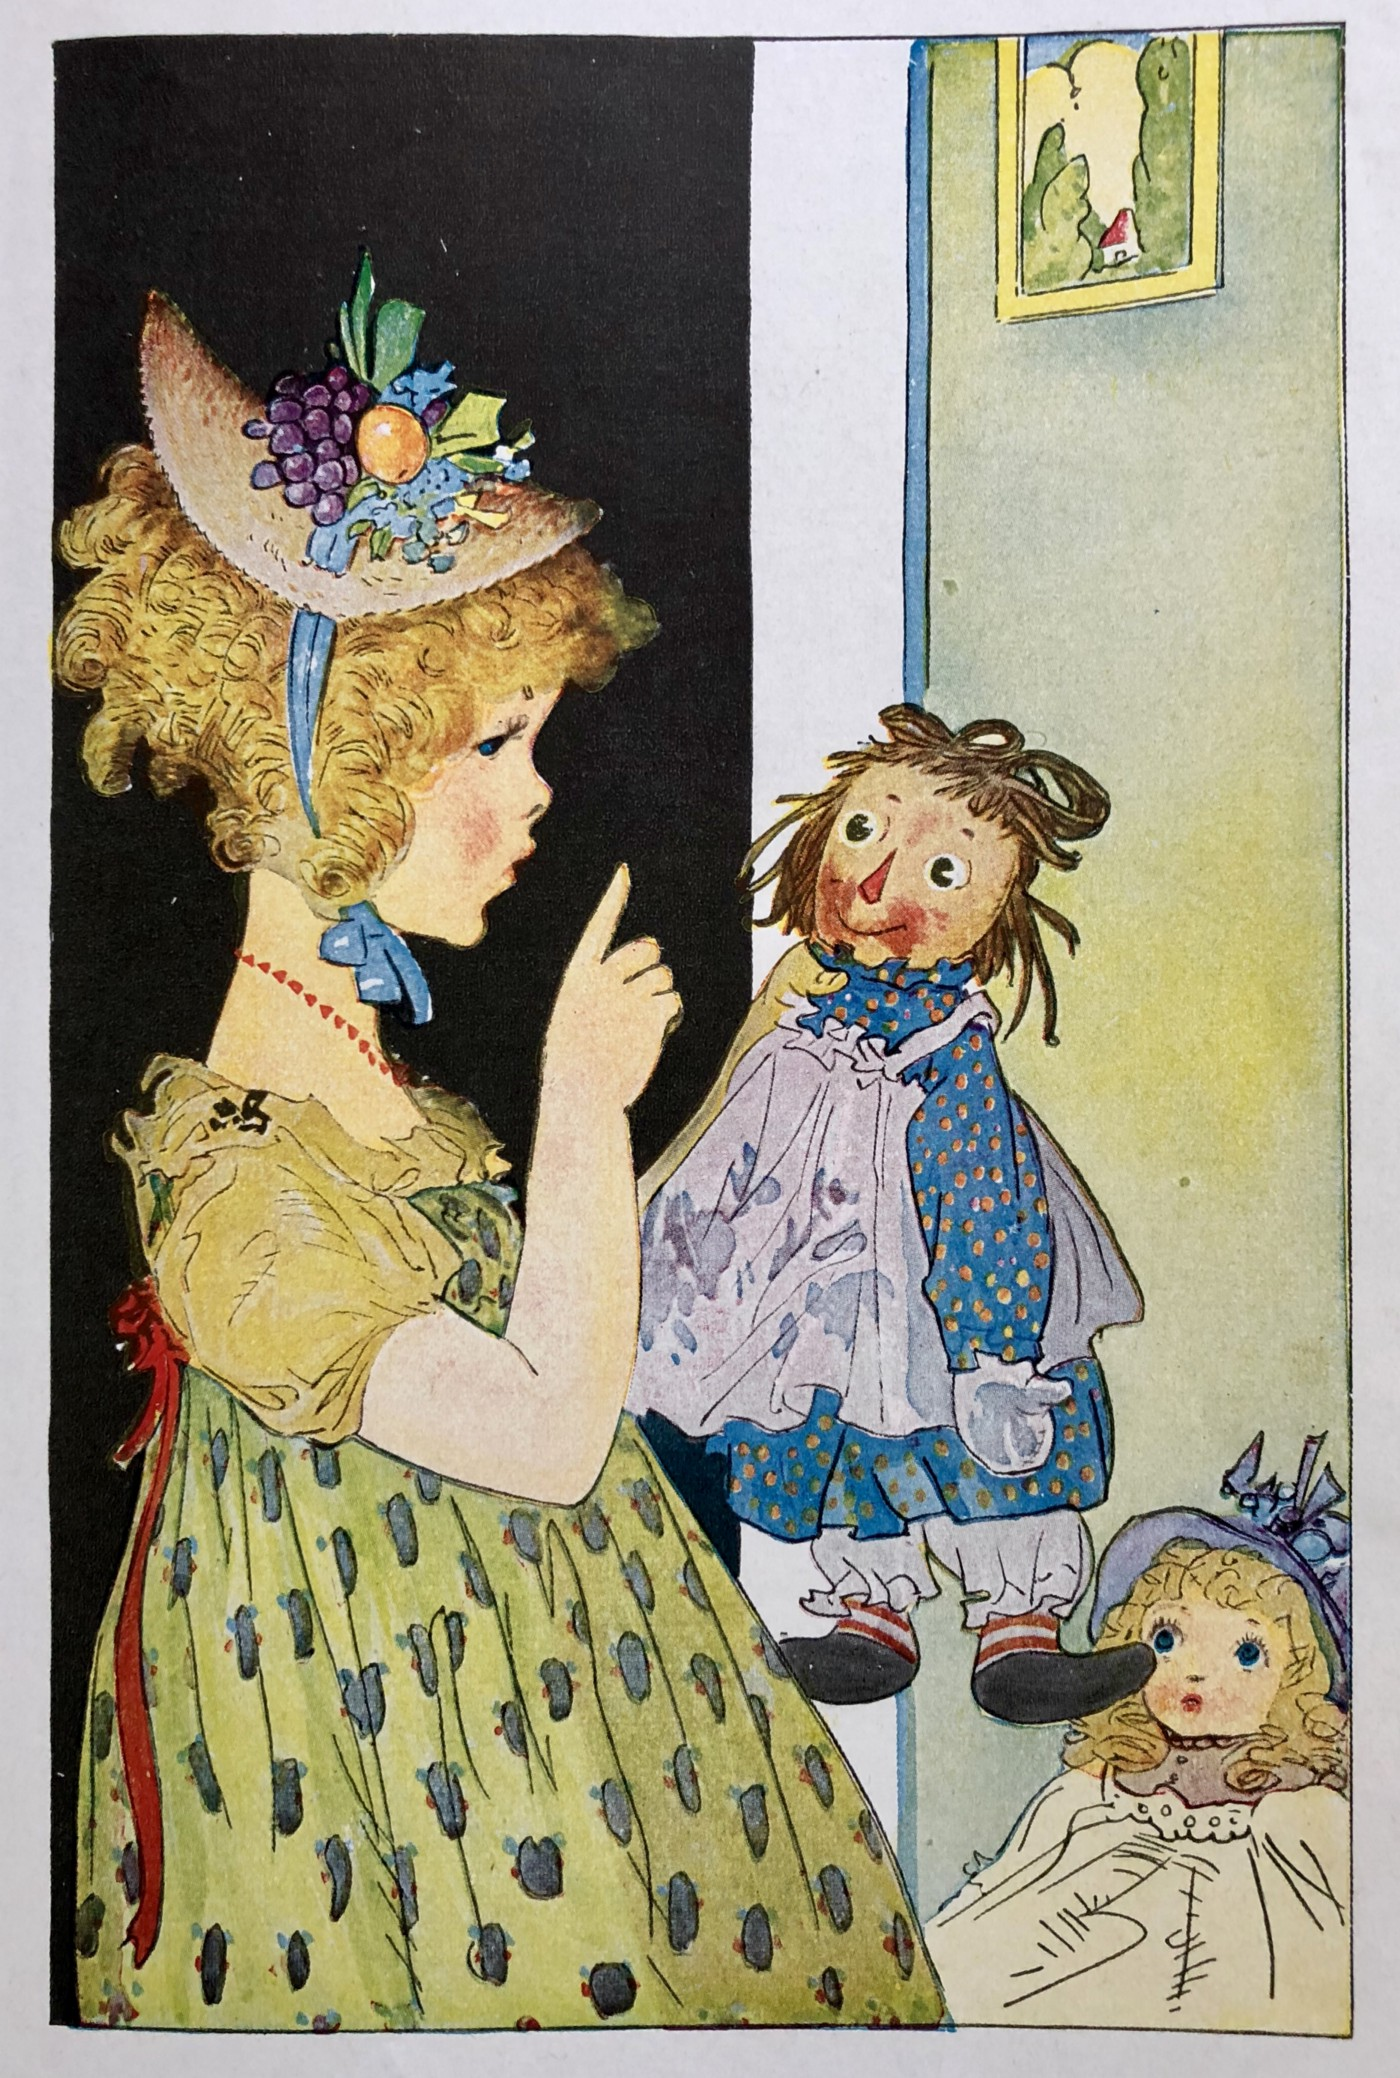 A little girl chastises her dirty-faced Raggedy Ann doll.